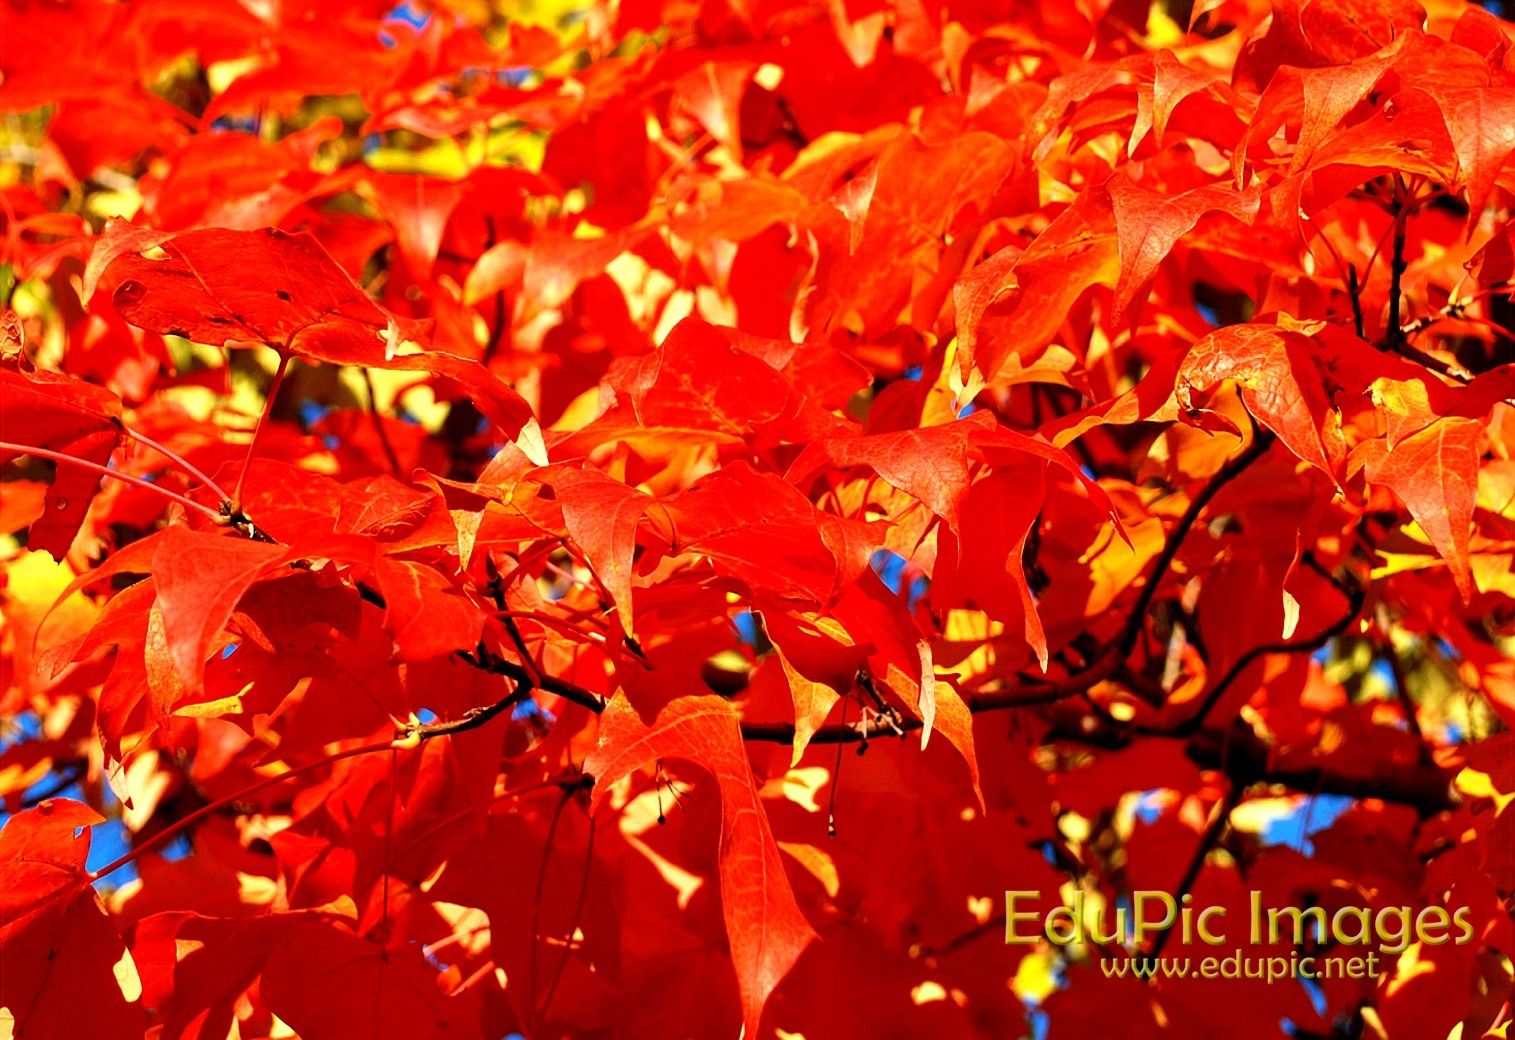 Fall Colors Desktop Wallpapers Pictures 1515x1040